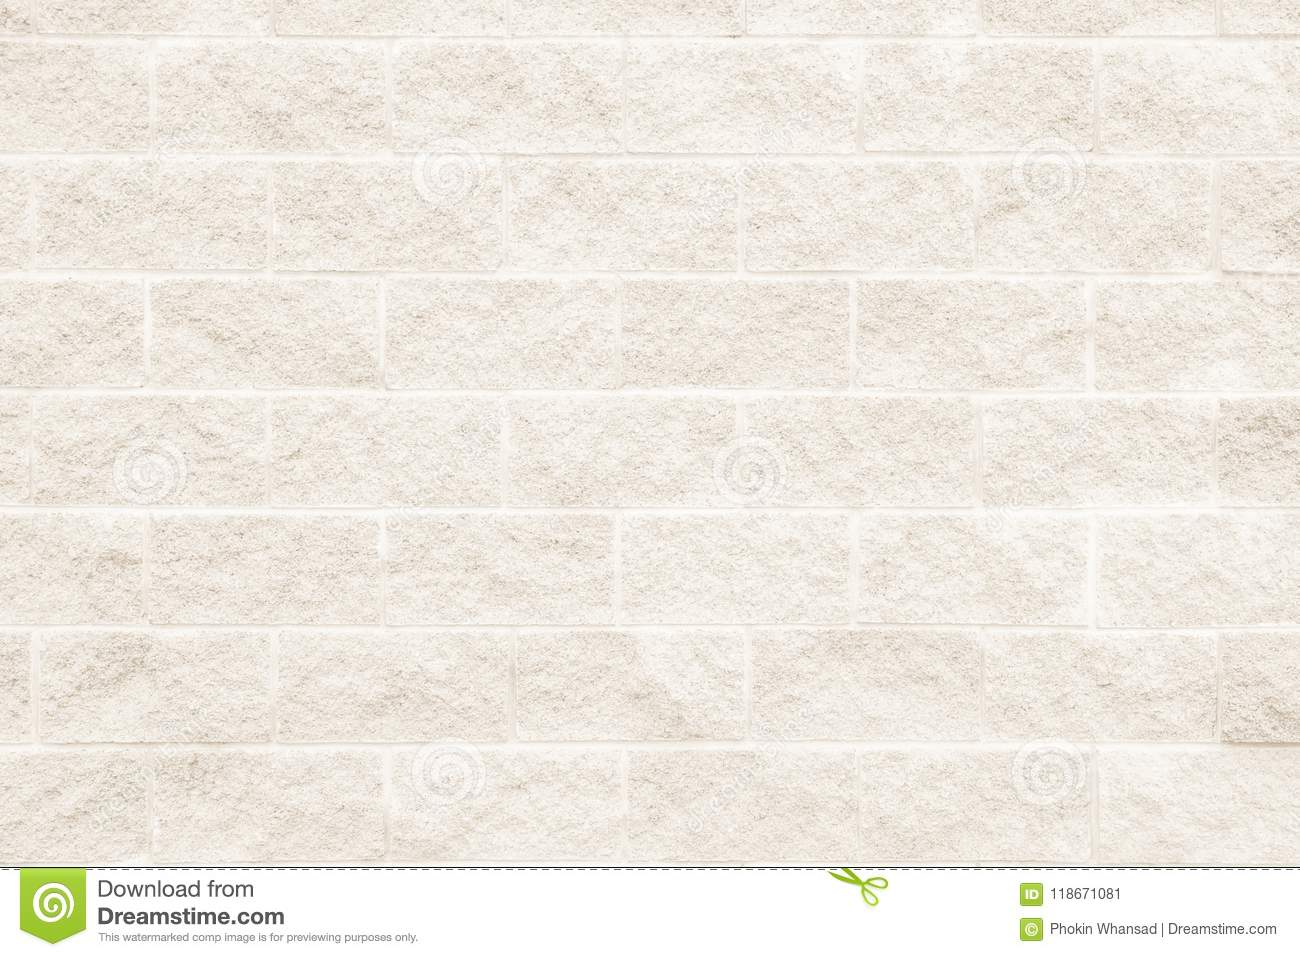 Brick wall texture background or wallpaper abstract paint to flo